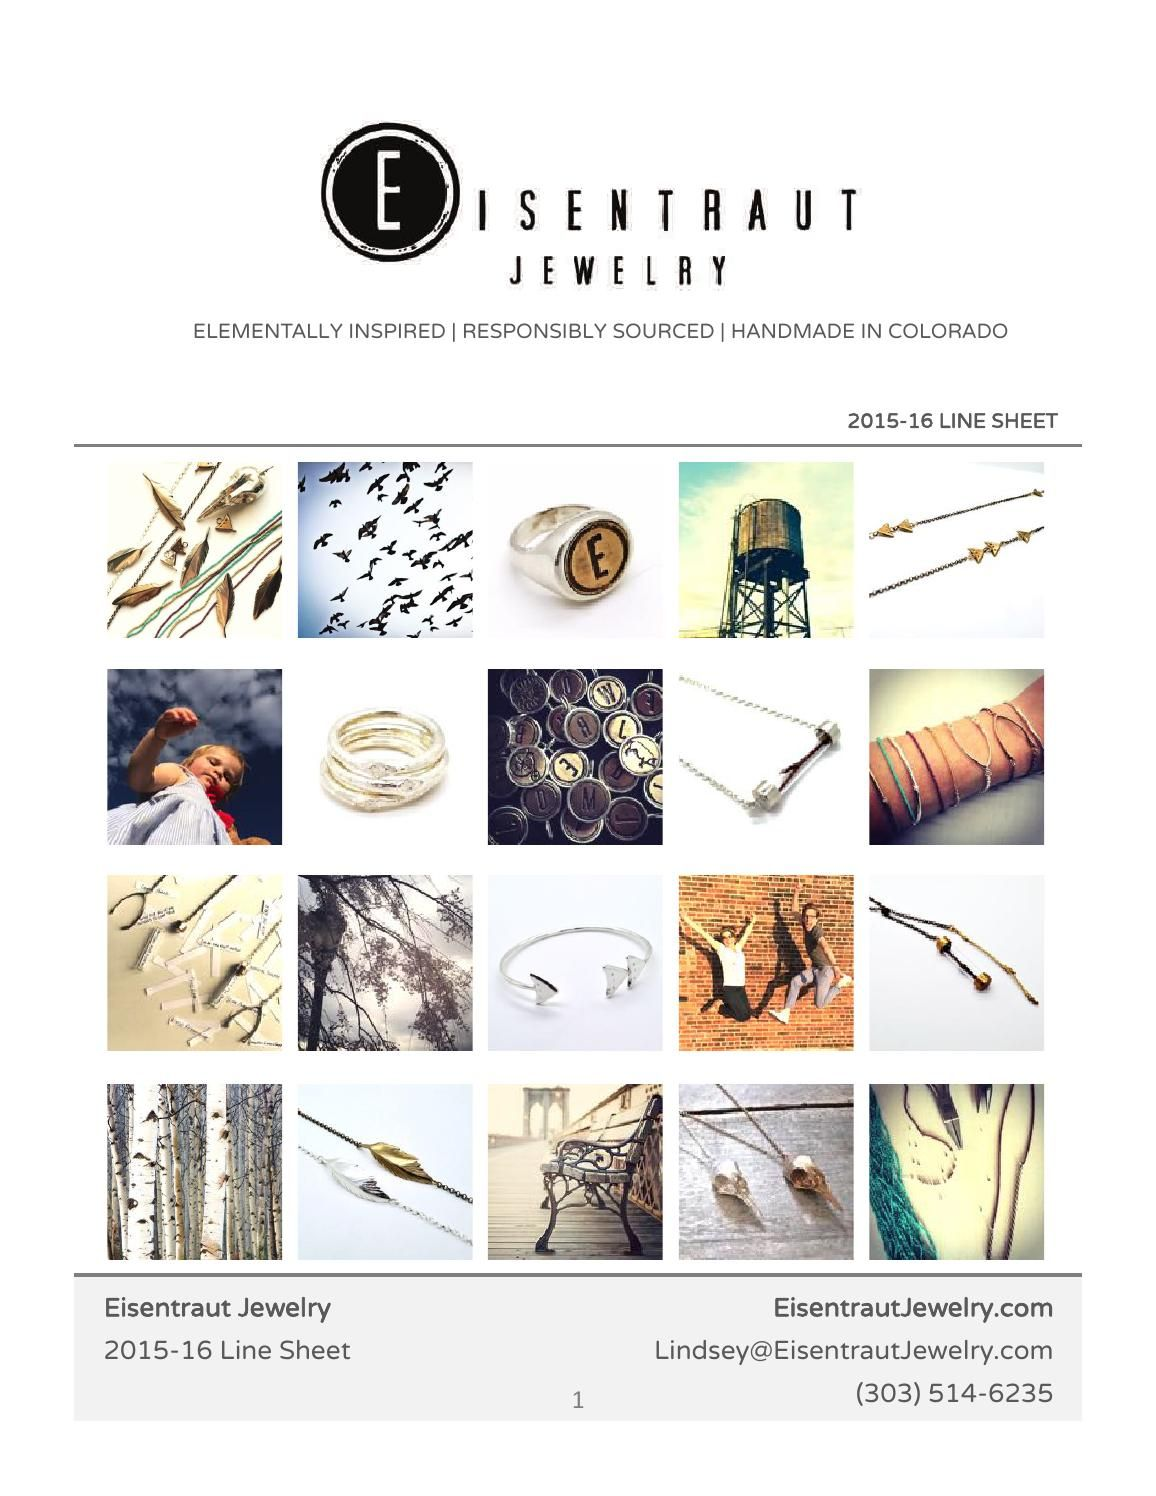 Eisentraut Jewelry Line Sheet 2015-16 | Catalog